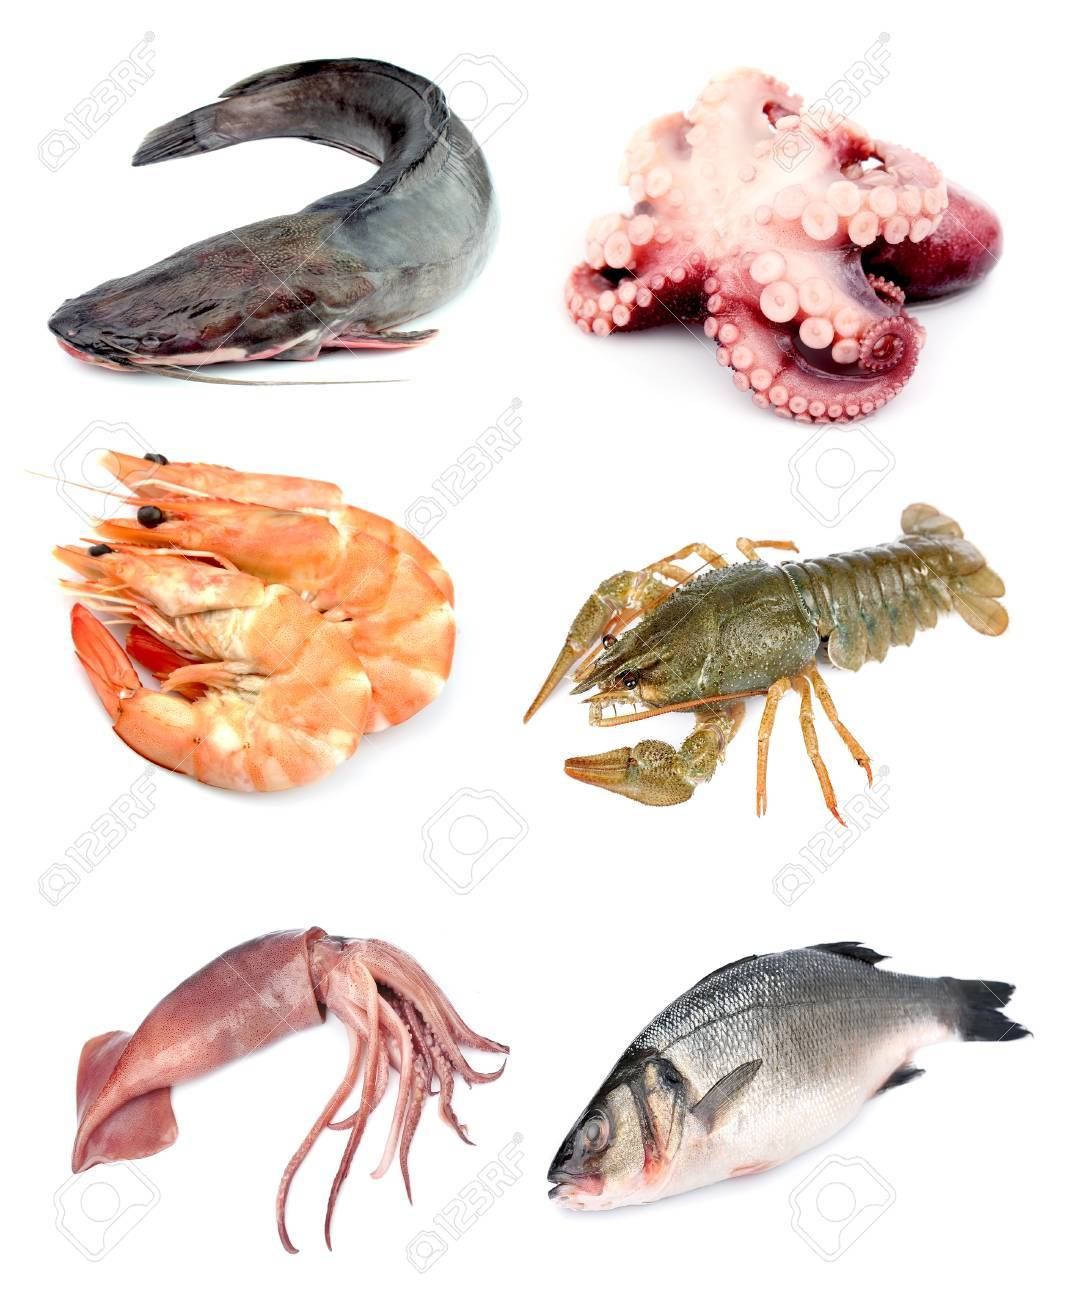 Collection of seafood on white background Stock Photo - 15845395